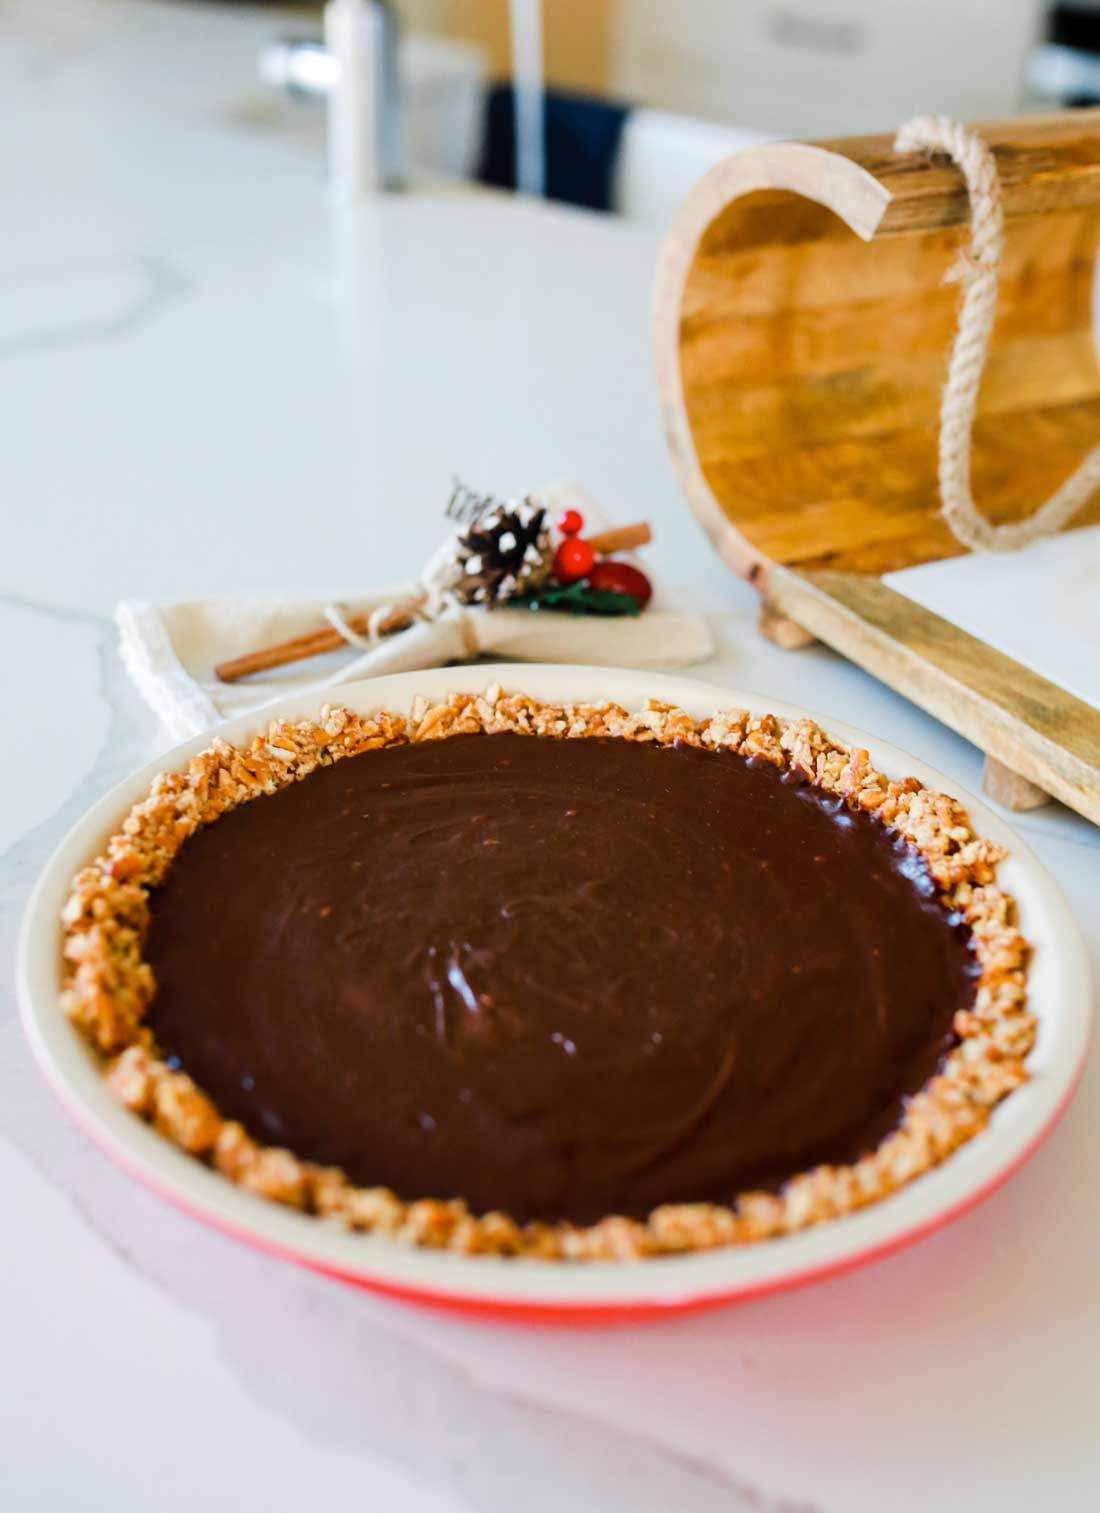 Chocolate truffle pie with a pretzel crust!